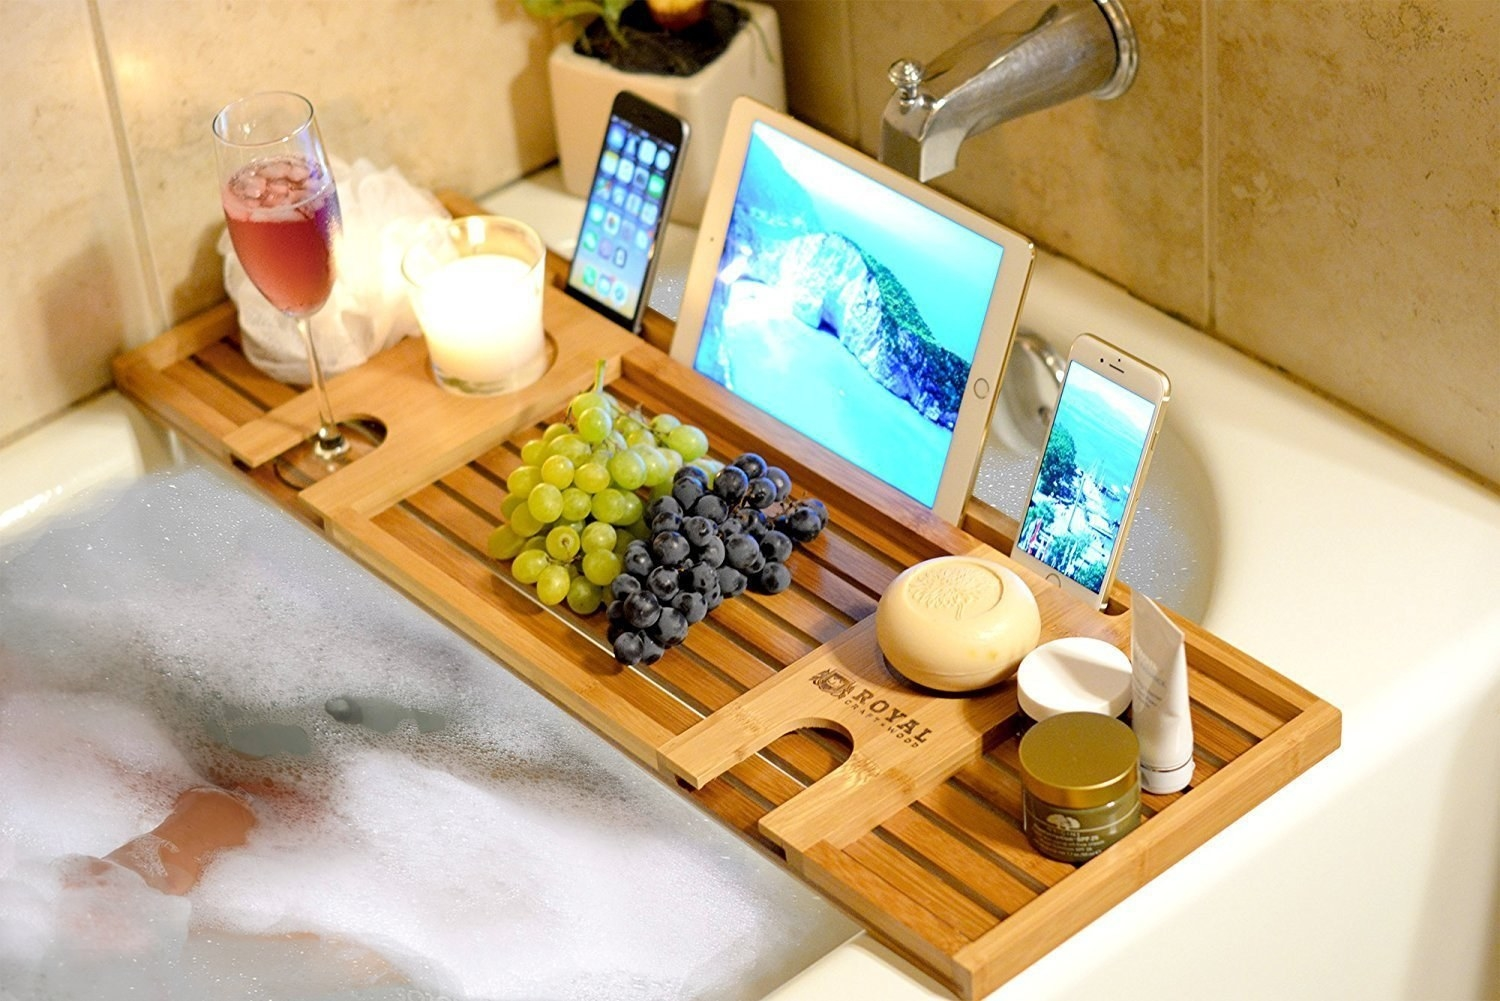 a bamboo bath tray hanging on the tub